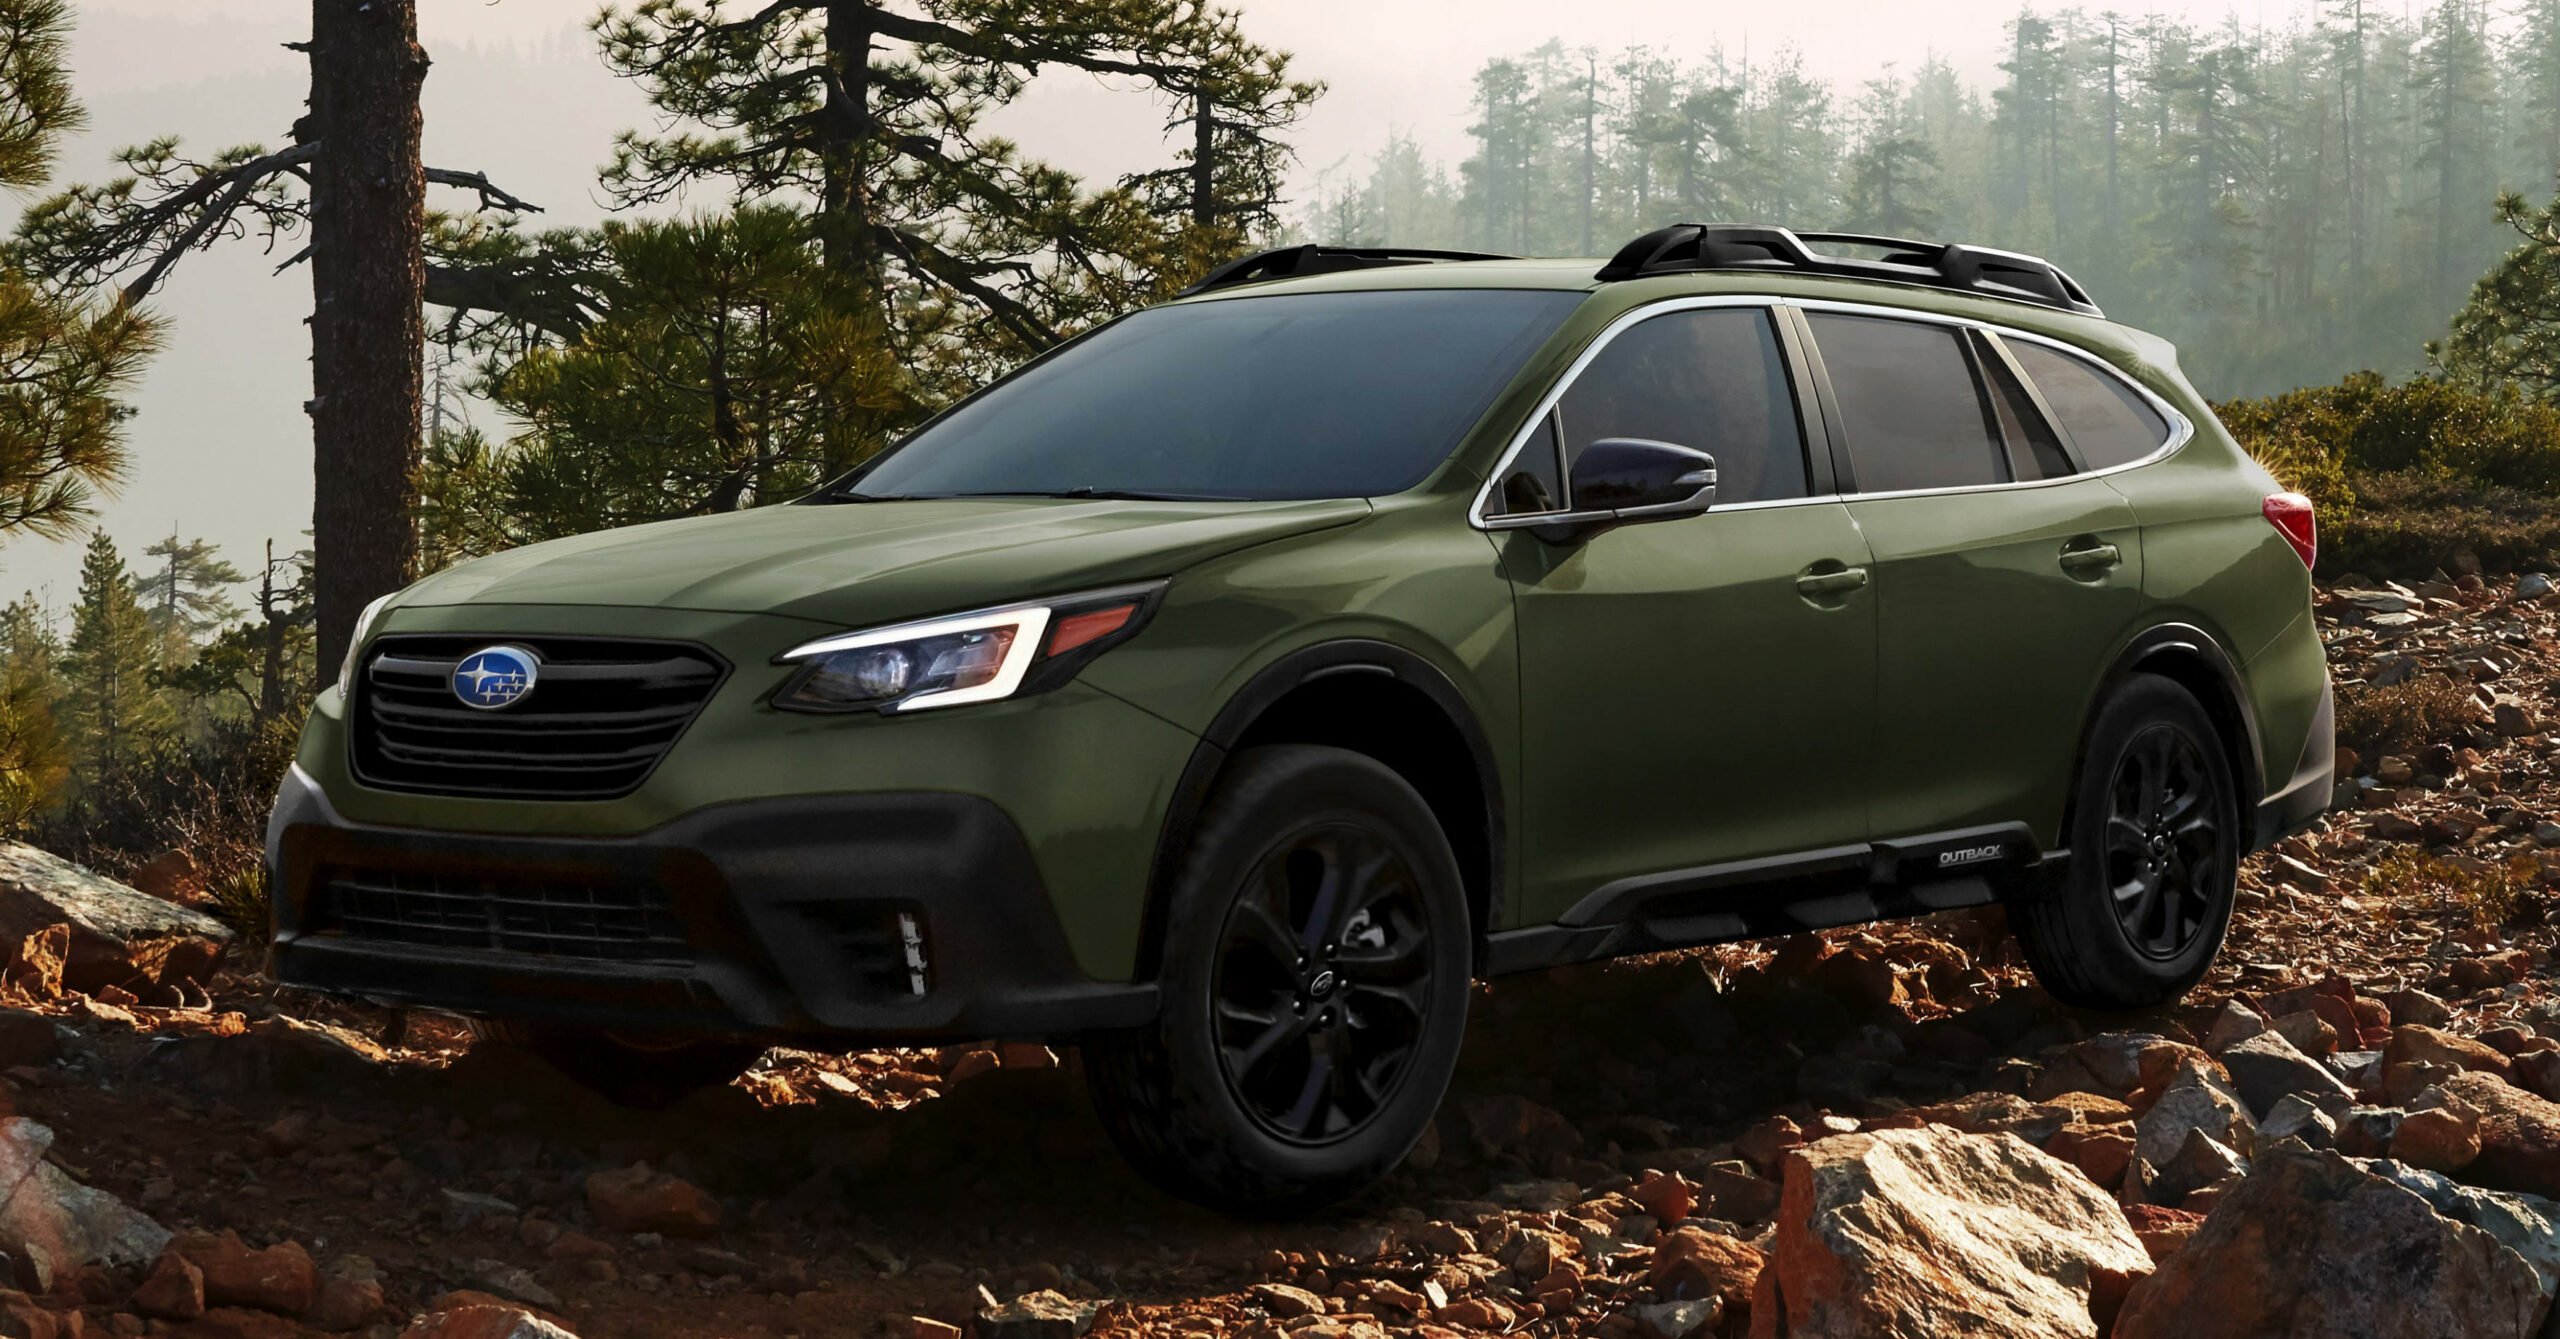 8 Subaru Outback - sixth-gen unveiled at NYIAS - Paul Tan's ...